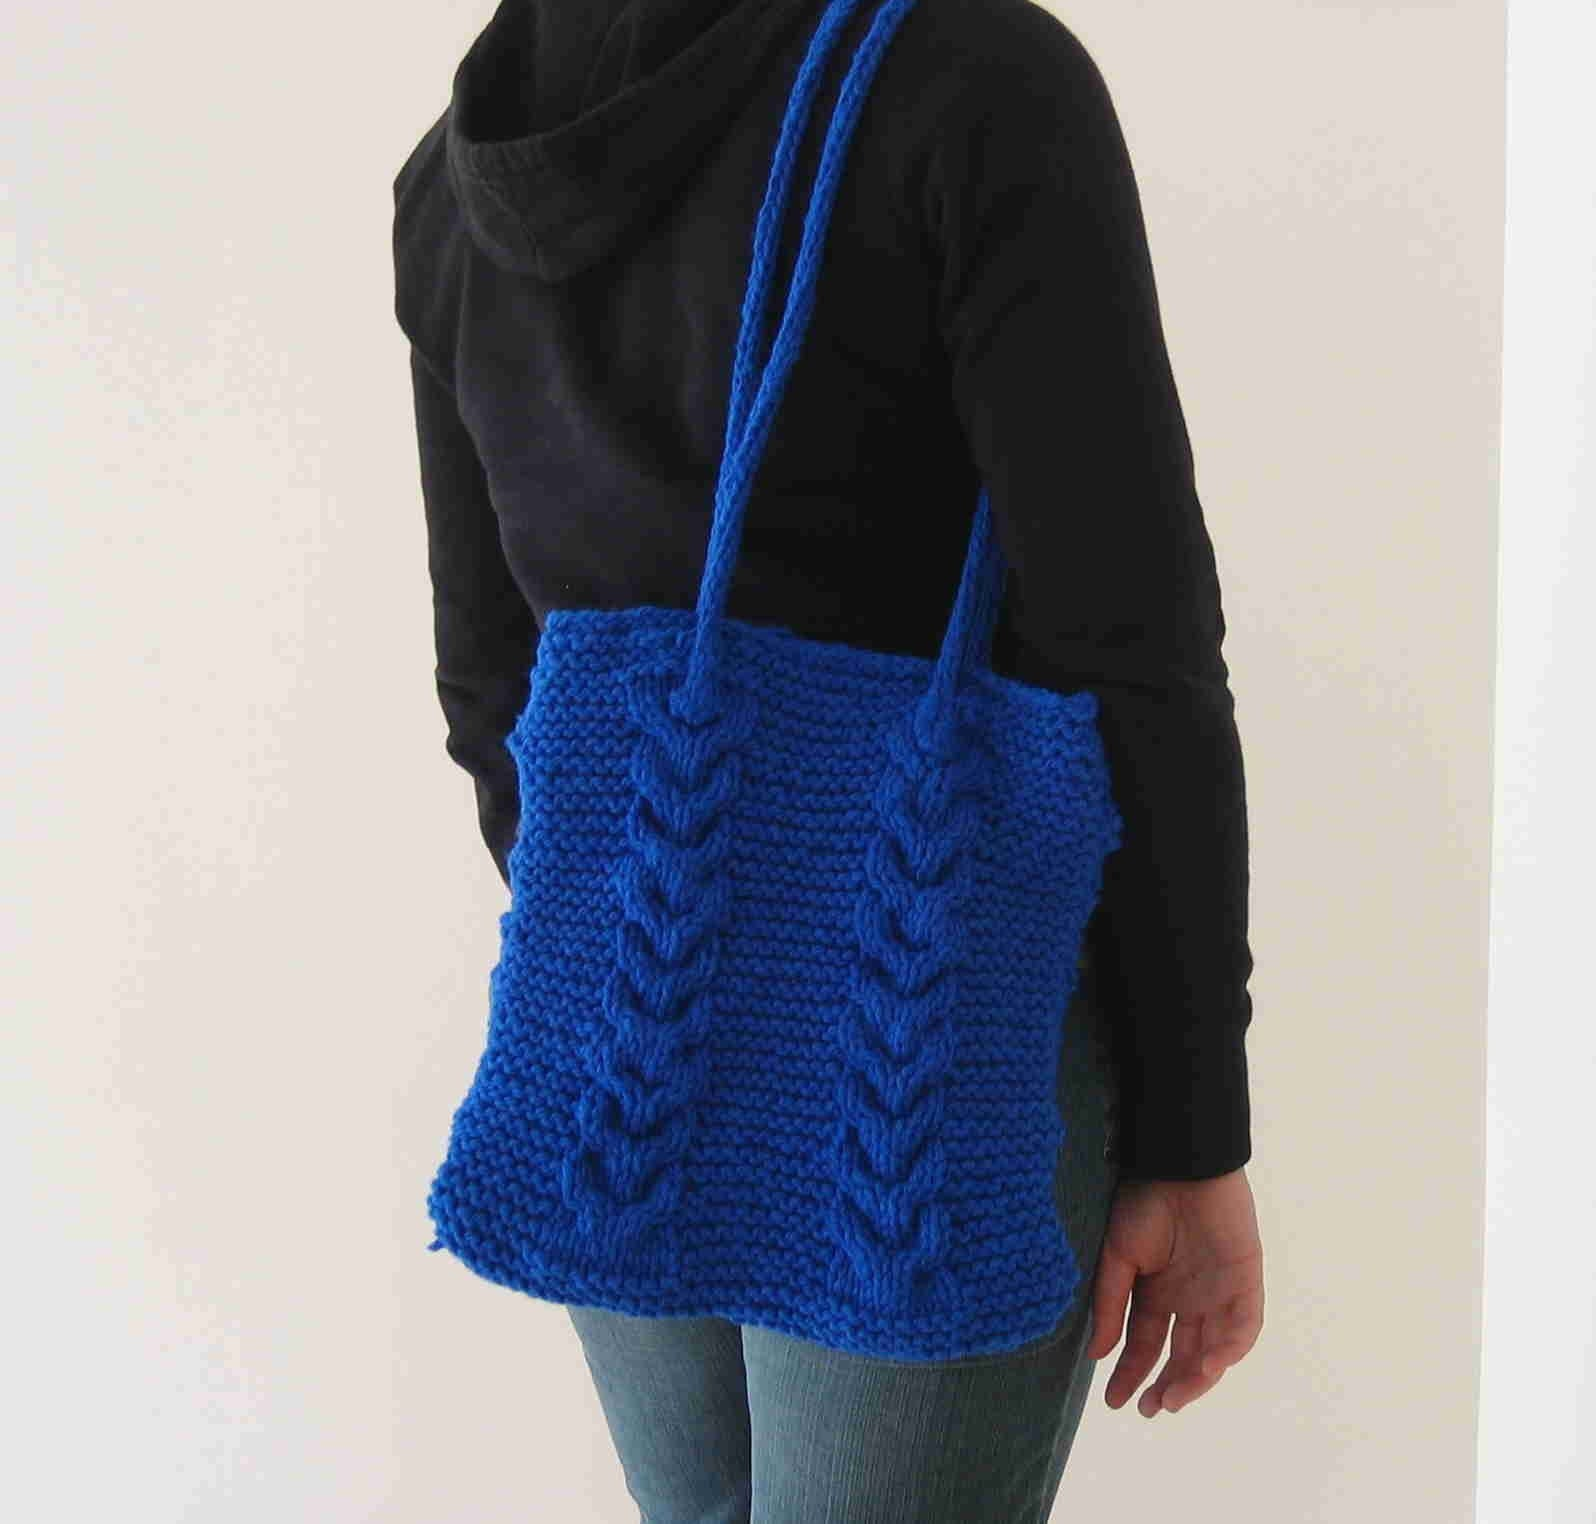 Knitting Pattern Cable Bag : Its Only String: Cable Knit Tote Bag